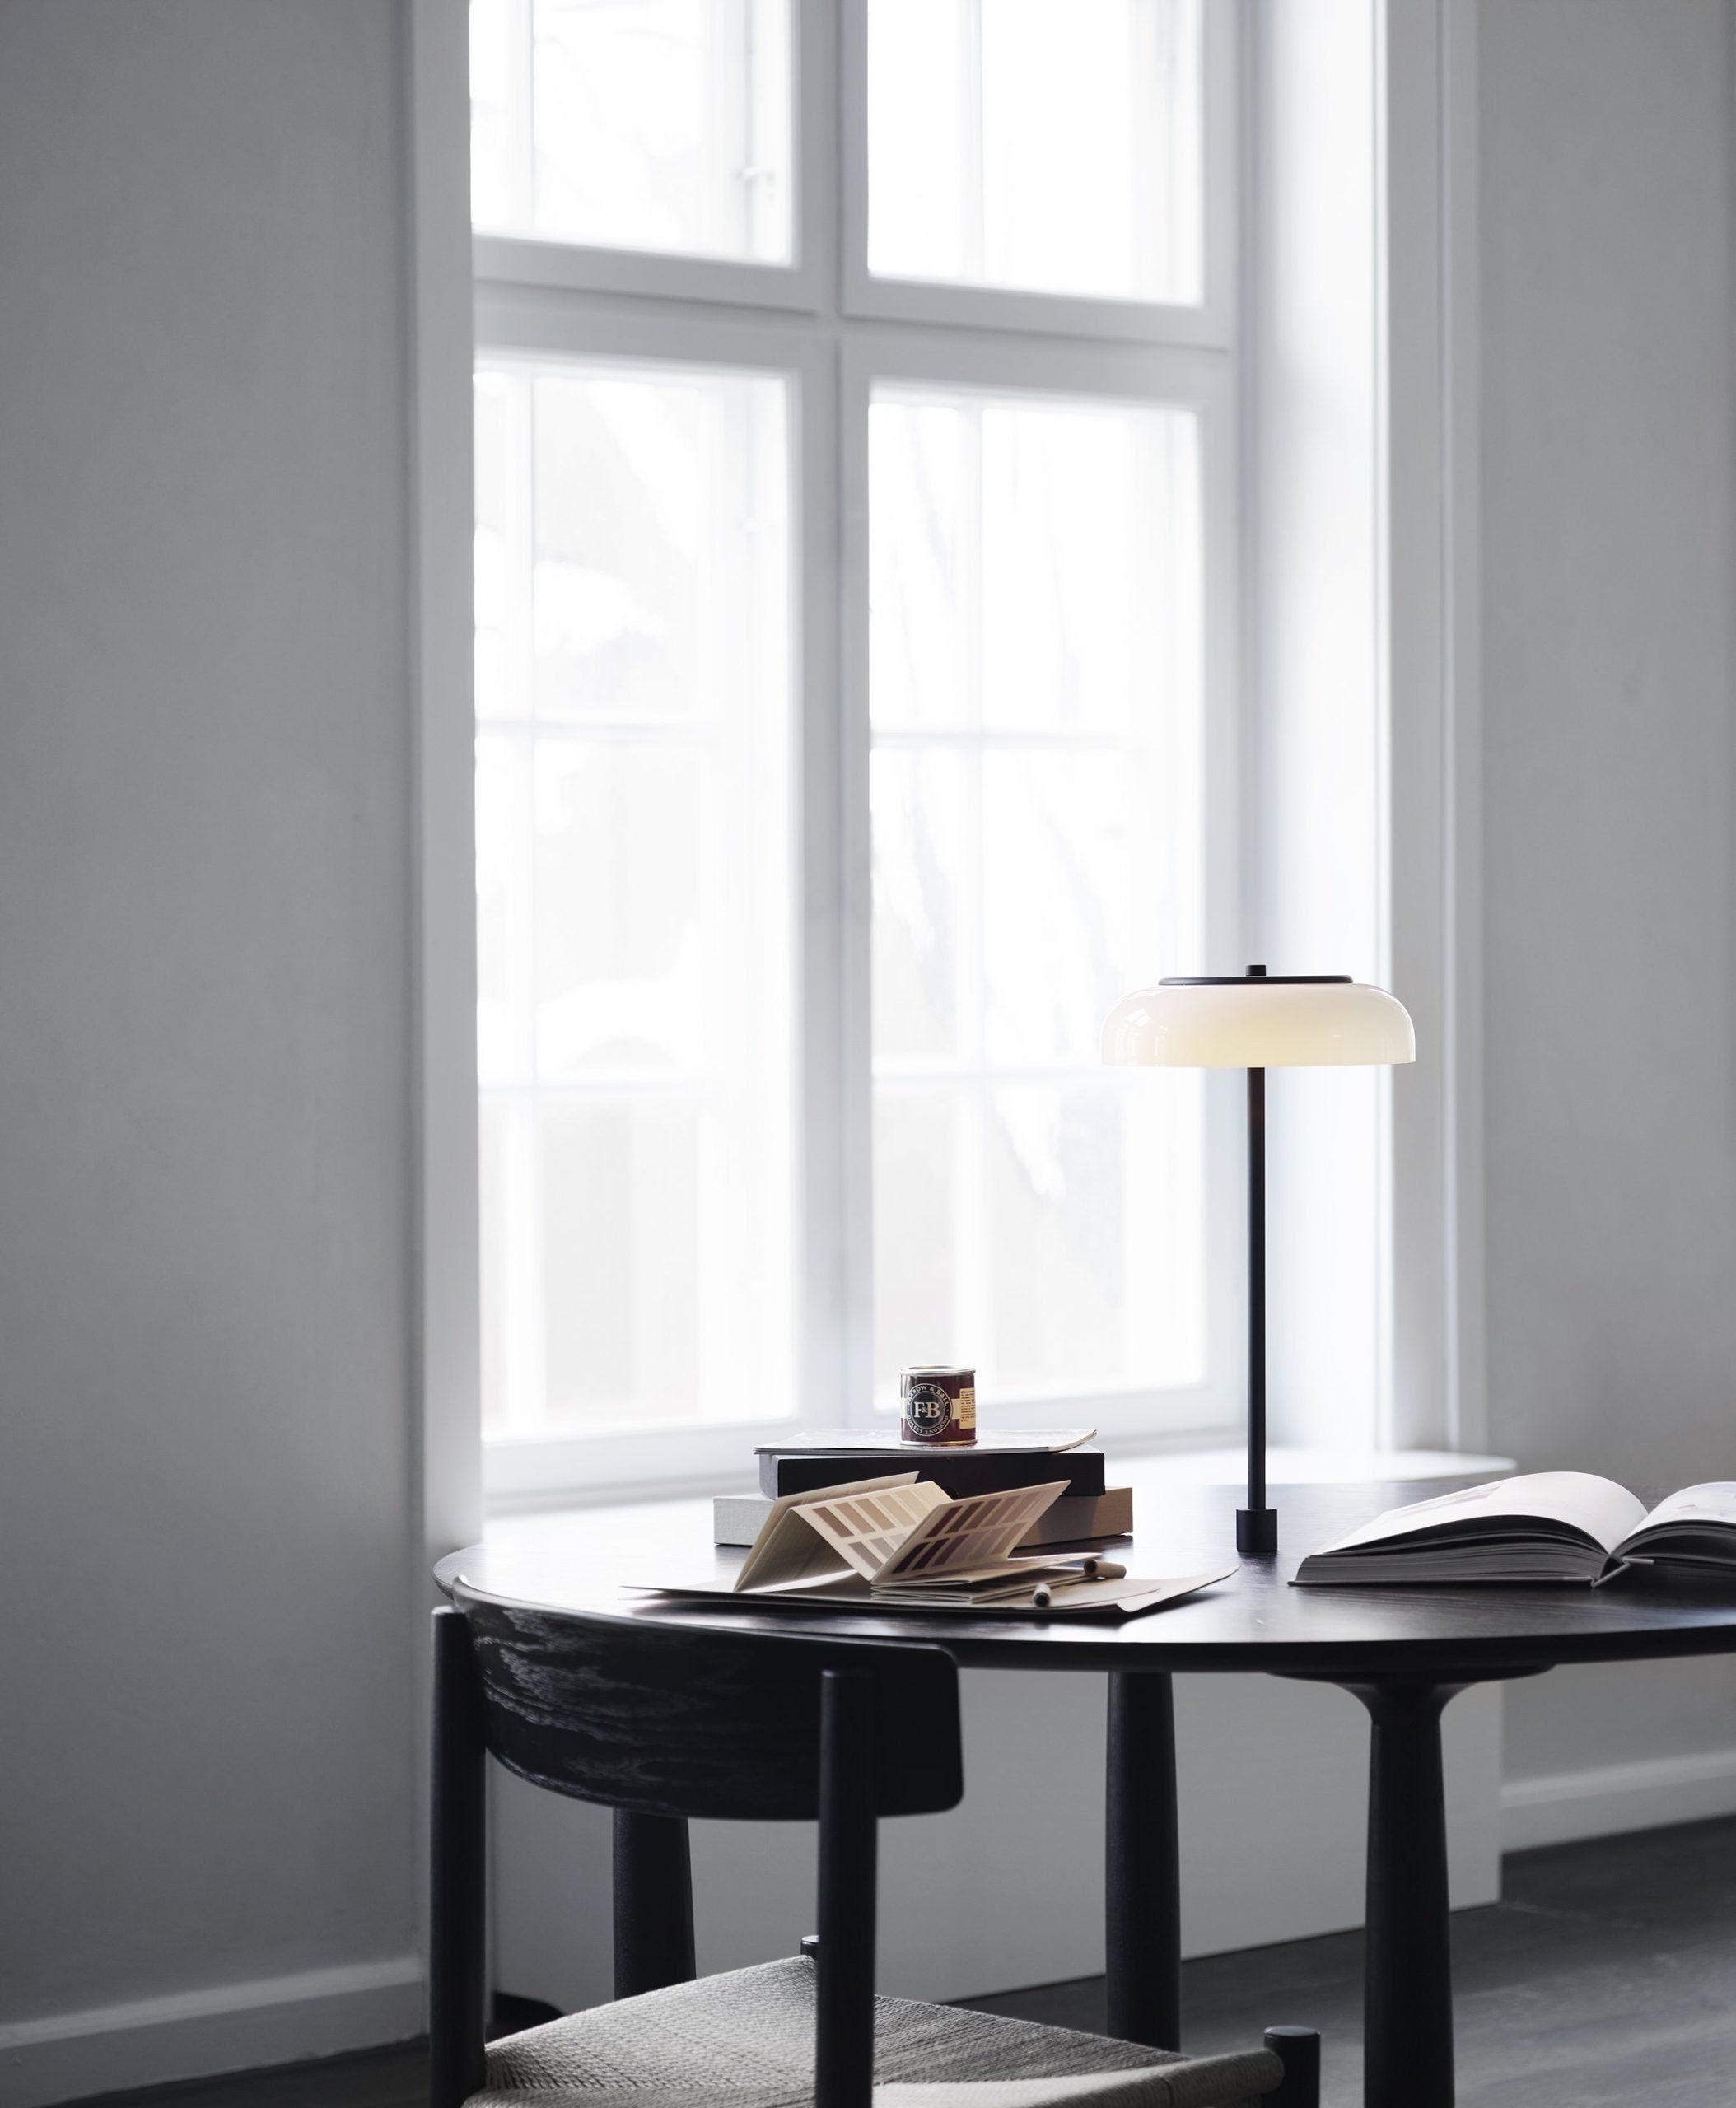 The 20 Best Scandinavian Design Table Lamps In 2020 Scandinavian Home Interiors Table Design Scandinavian Design